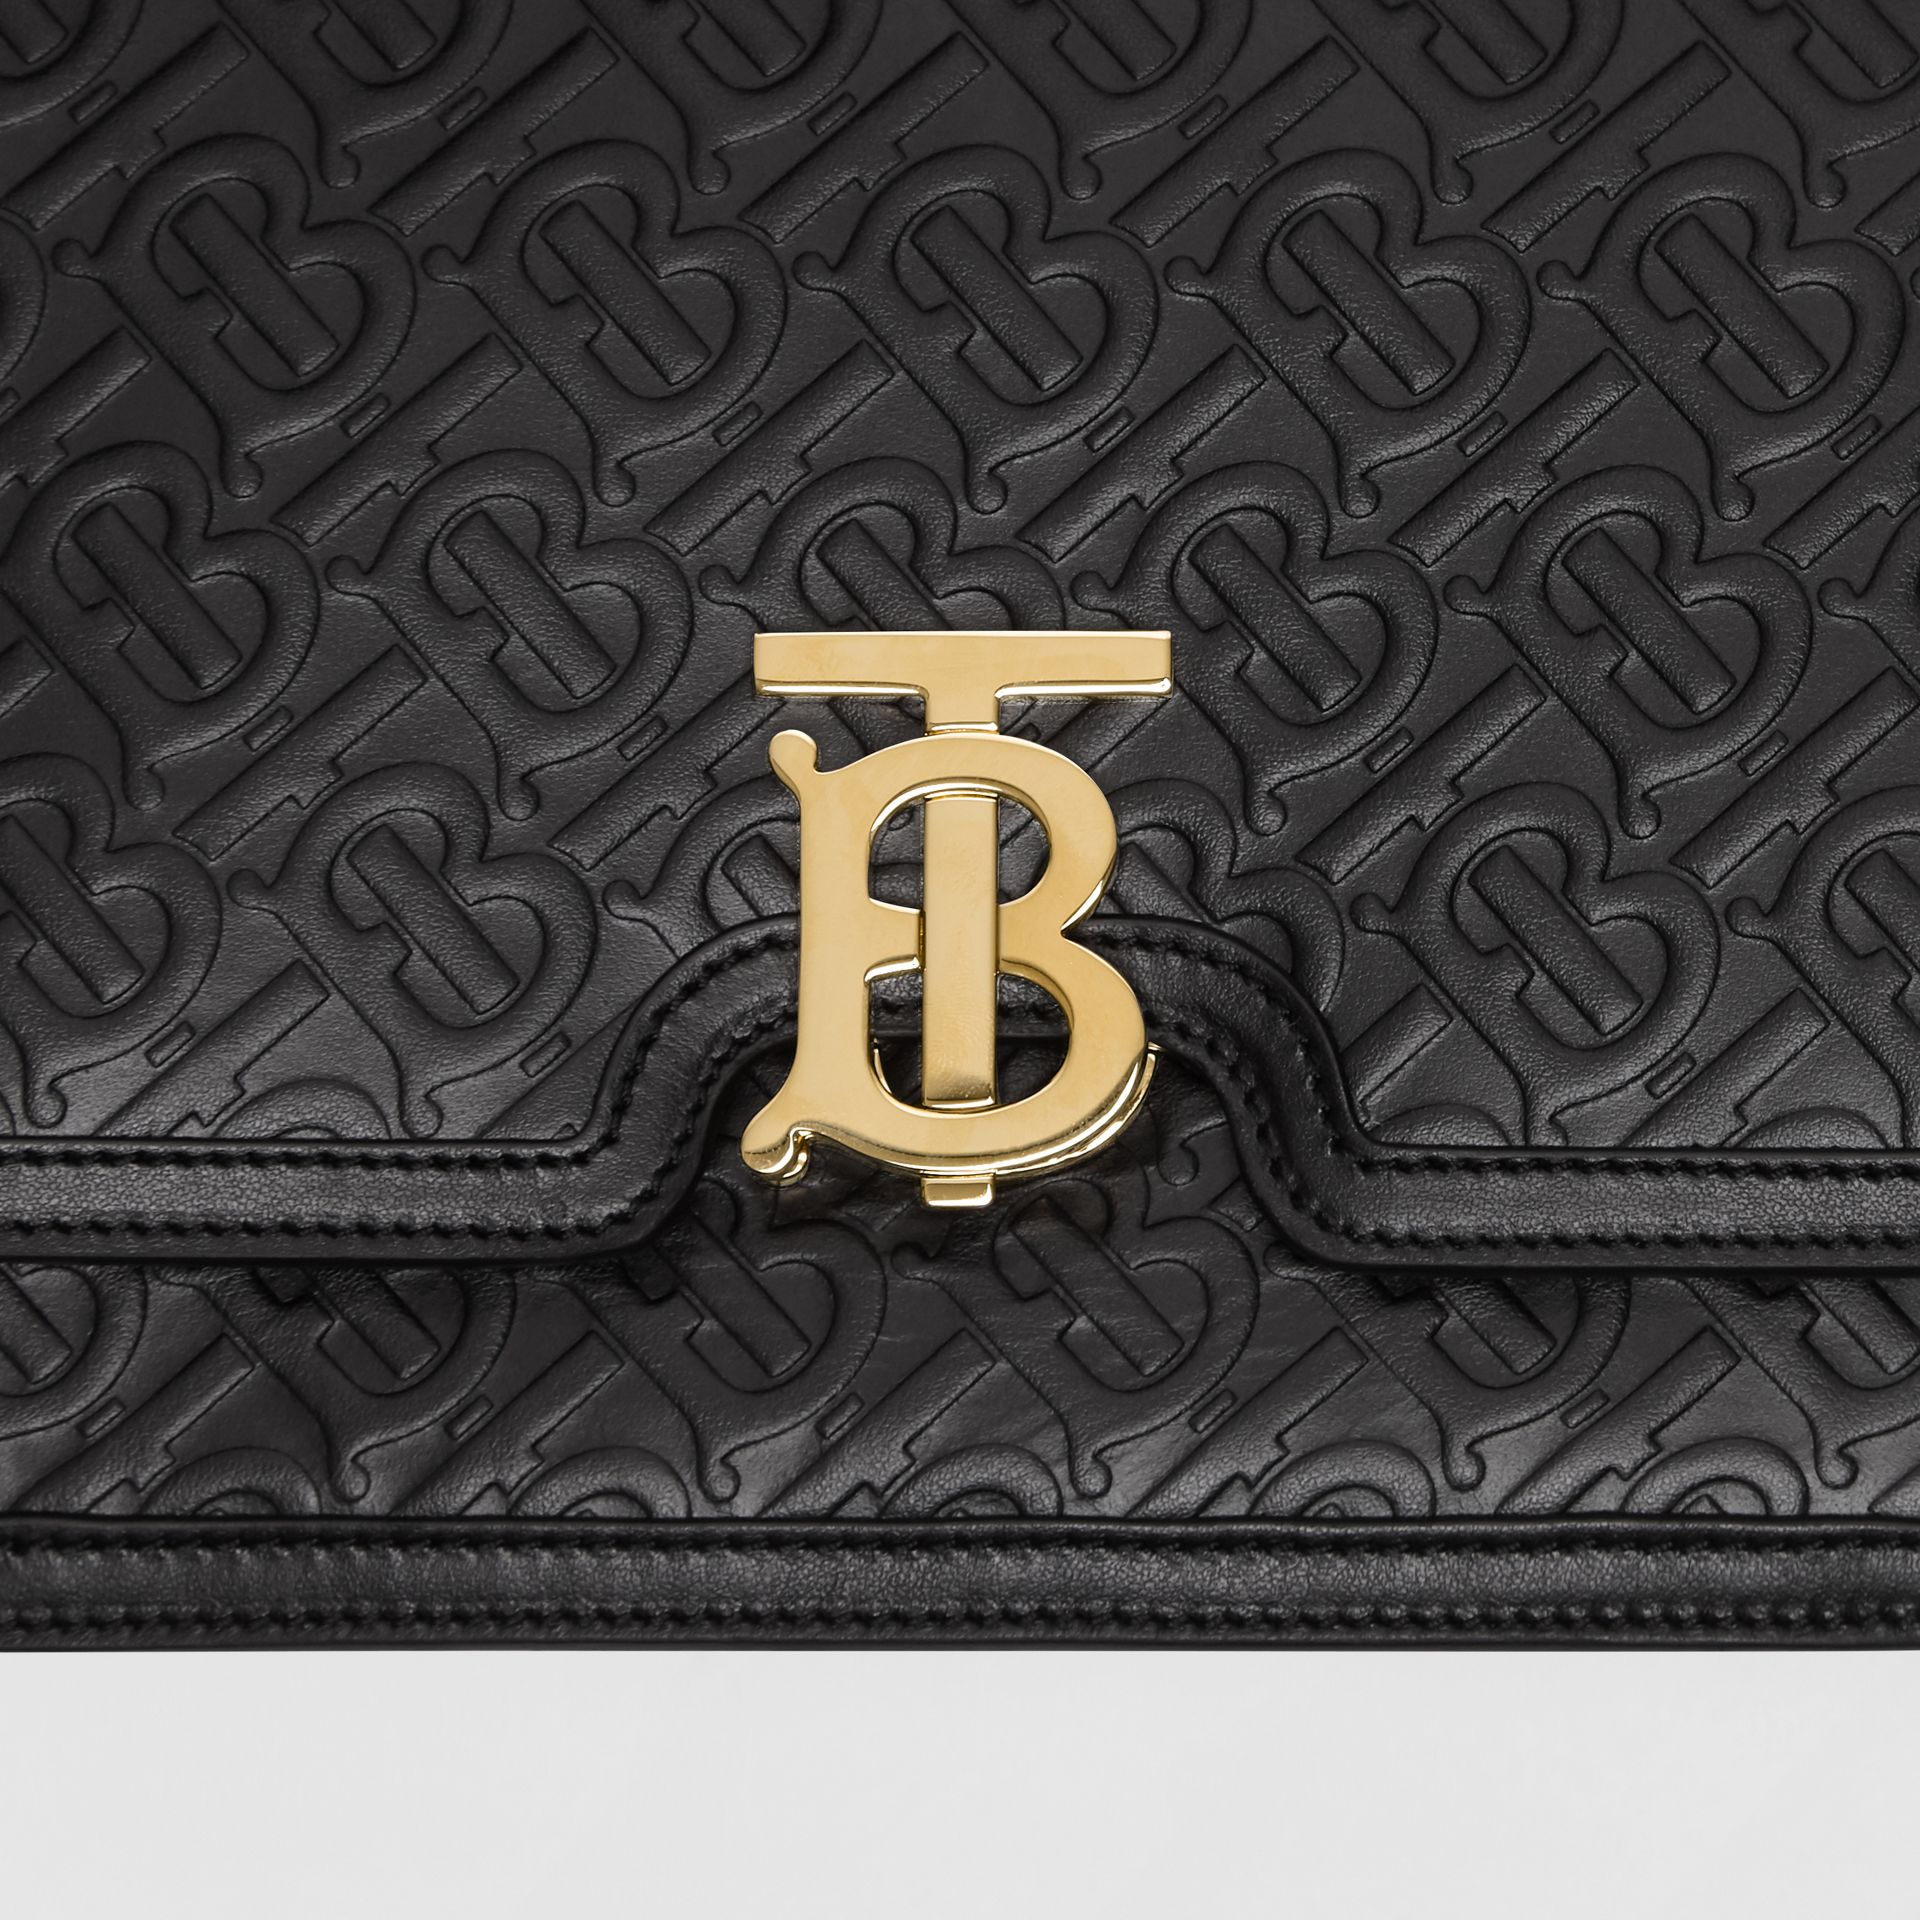 Medium Monogram Leather TB Bag in Black - Women | Burberry United States - gallery image 1